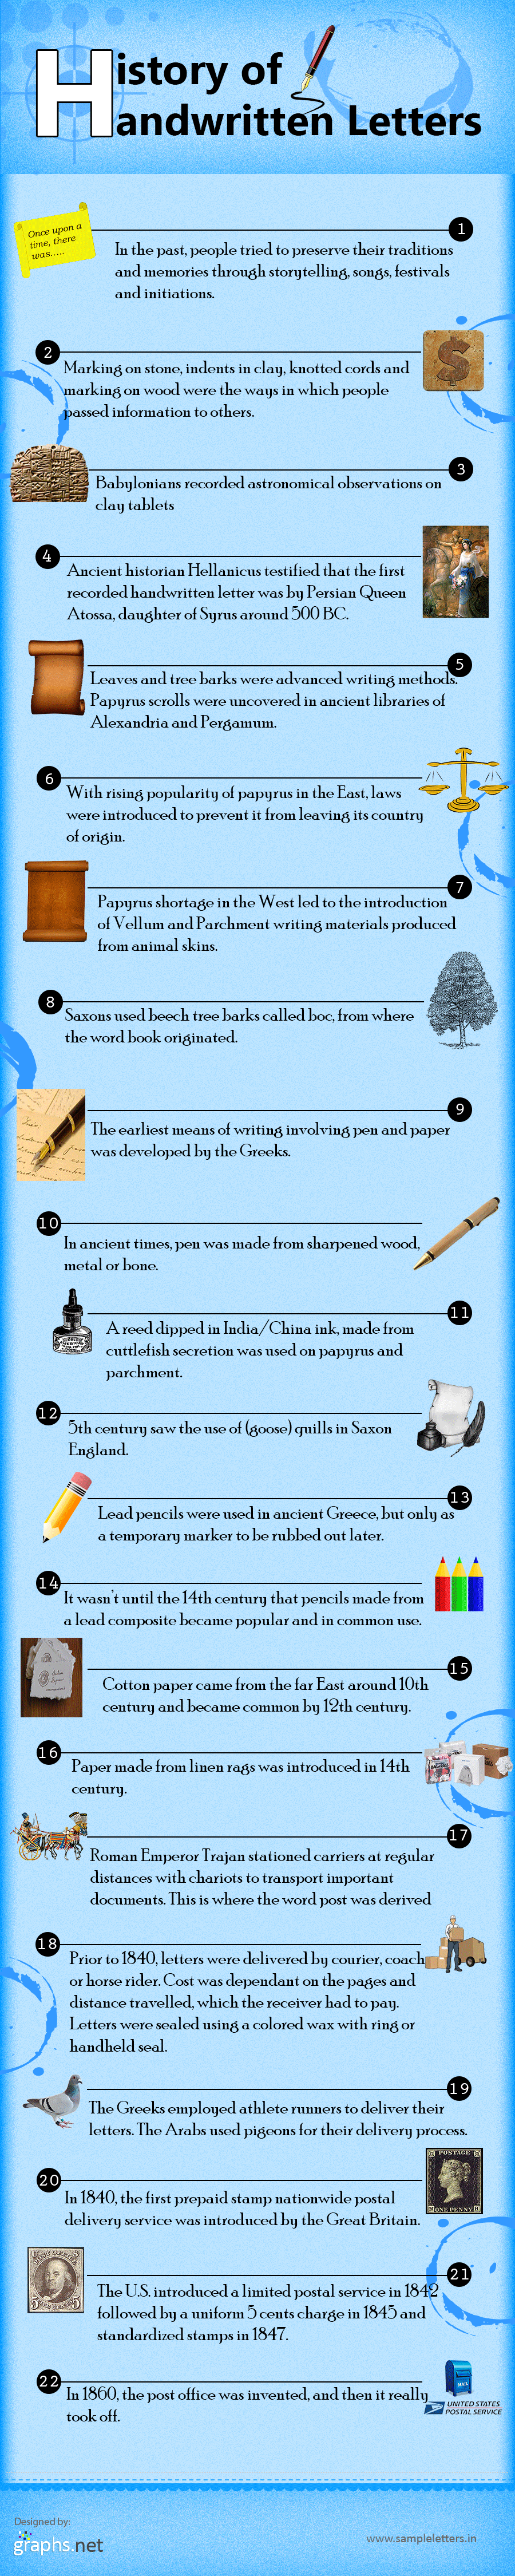 History and Facts about Handwritten Letters